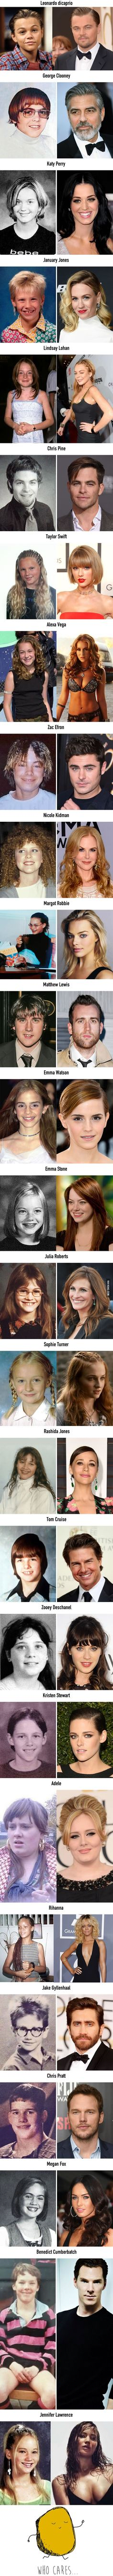 CAPTION: 27 celebrities who blossomed after puberty. REAL CAPTION: 27 celebrities who were either already cute or blossomed after money and makeup:)) Before And After Puberty, Turn Down For What, Arte Nerd, Funny Memes, Hilarious, Funny Quotes, Celebrities Then And Now, Mind Blown, Laugh Out Loud